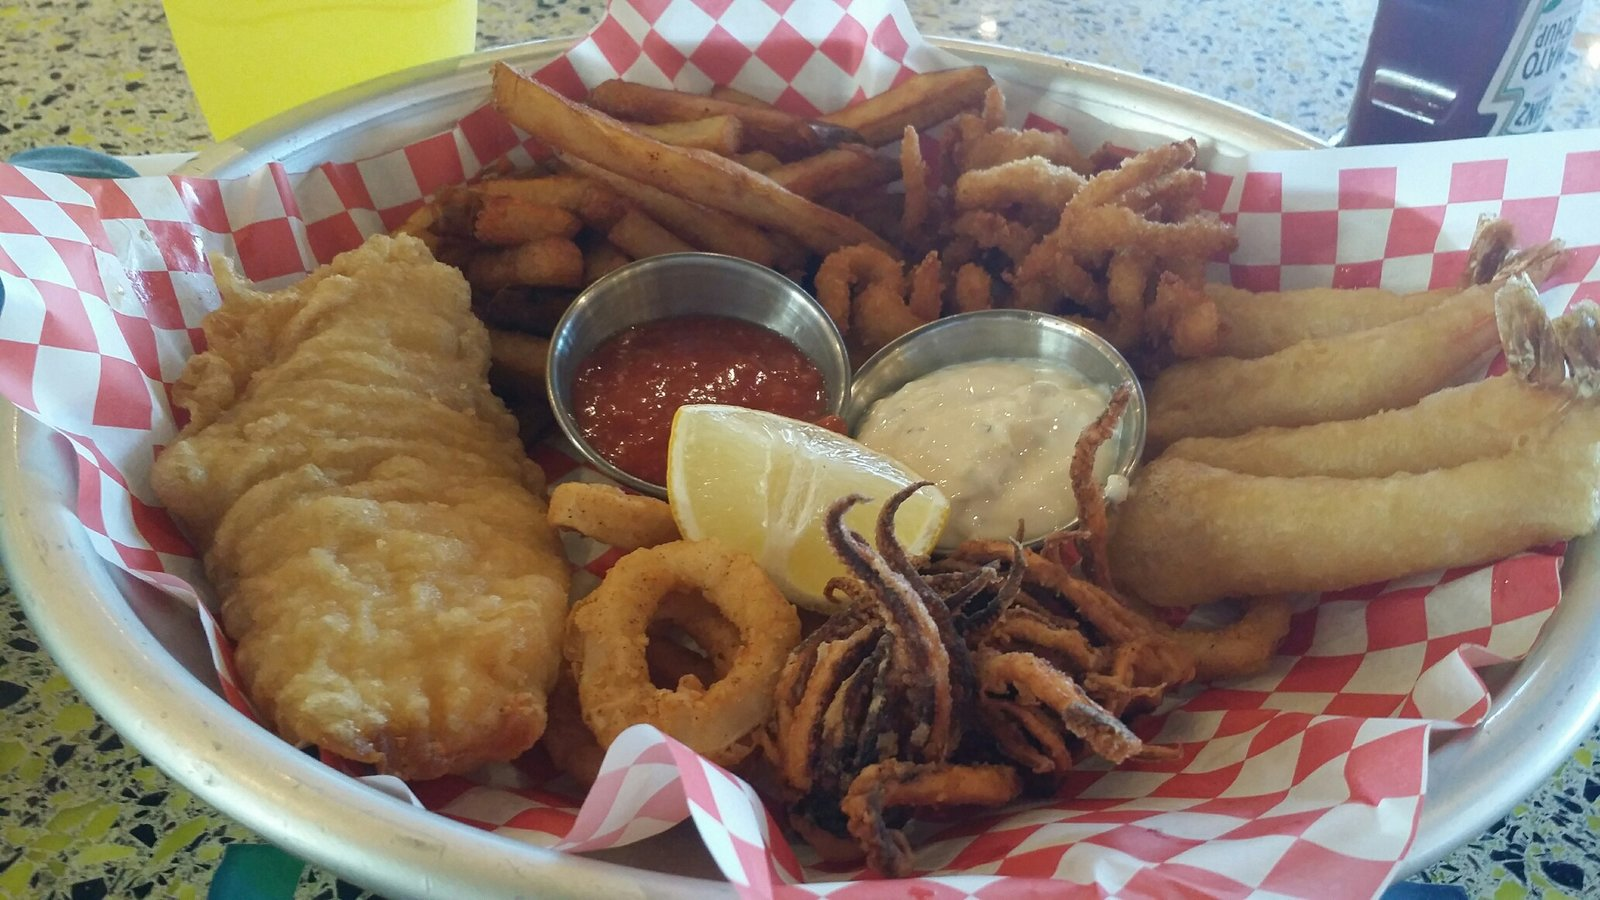 Fried Seafood Platter Jpg Member Albums Cruise Critic Community